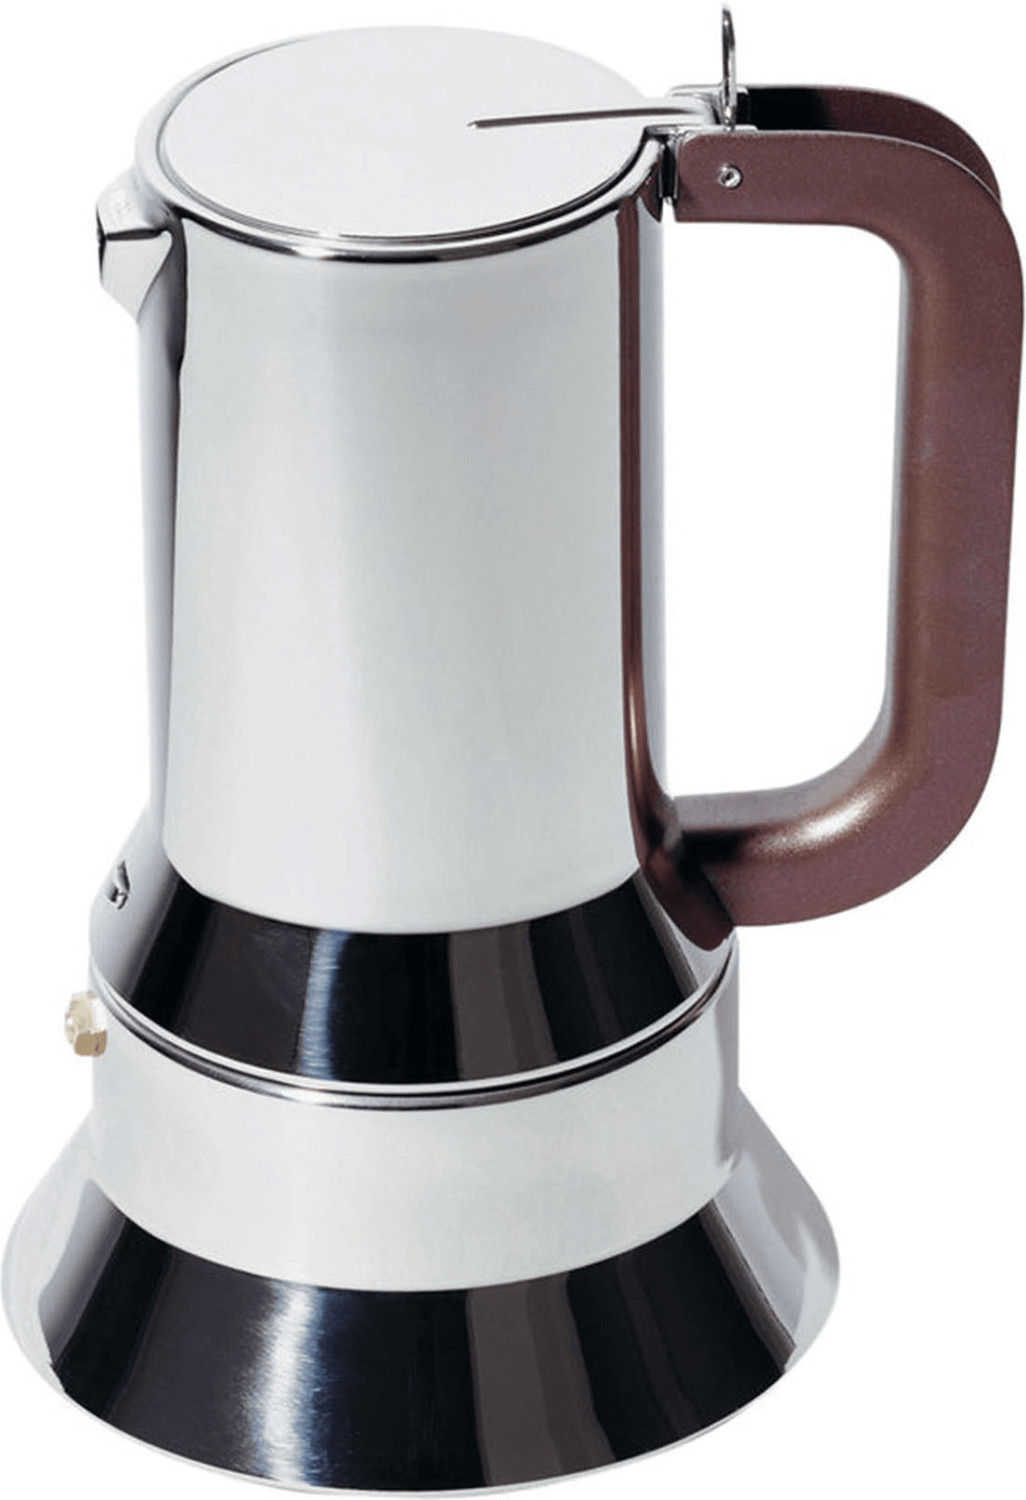 Image of Alessi 9090/1